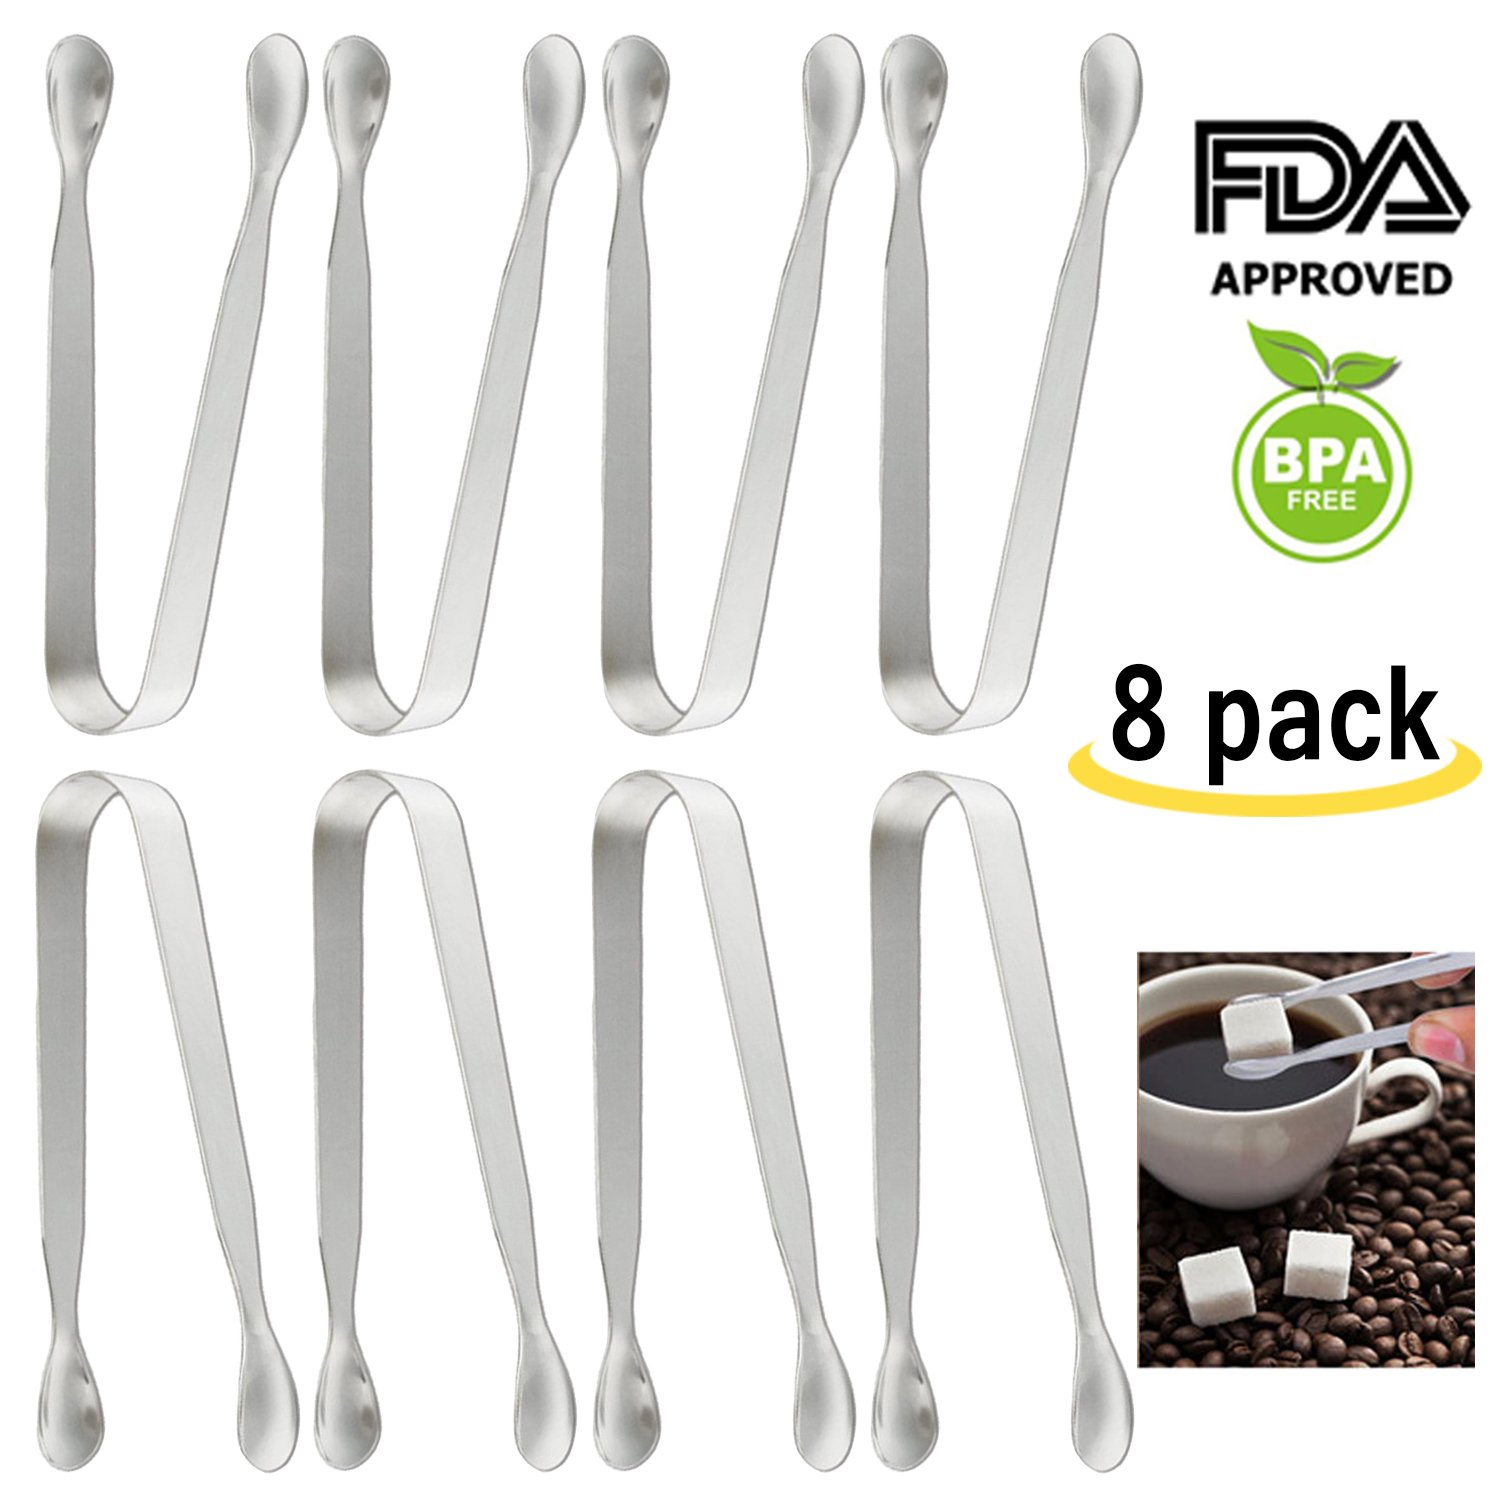 Amison Premium Sugar Ice Tongs for Coffee & Tea Party, Small Kitchen Tongs, Food-Grade 304 Stainless Steel Tongs, 4-1/2'' Heavy Duty, Ice Tongs, Mini Serving Tongs, Appetizer Tongs, Silver by (8 Pack)